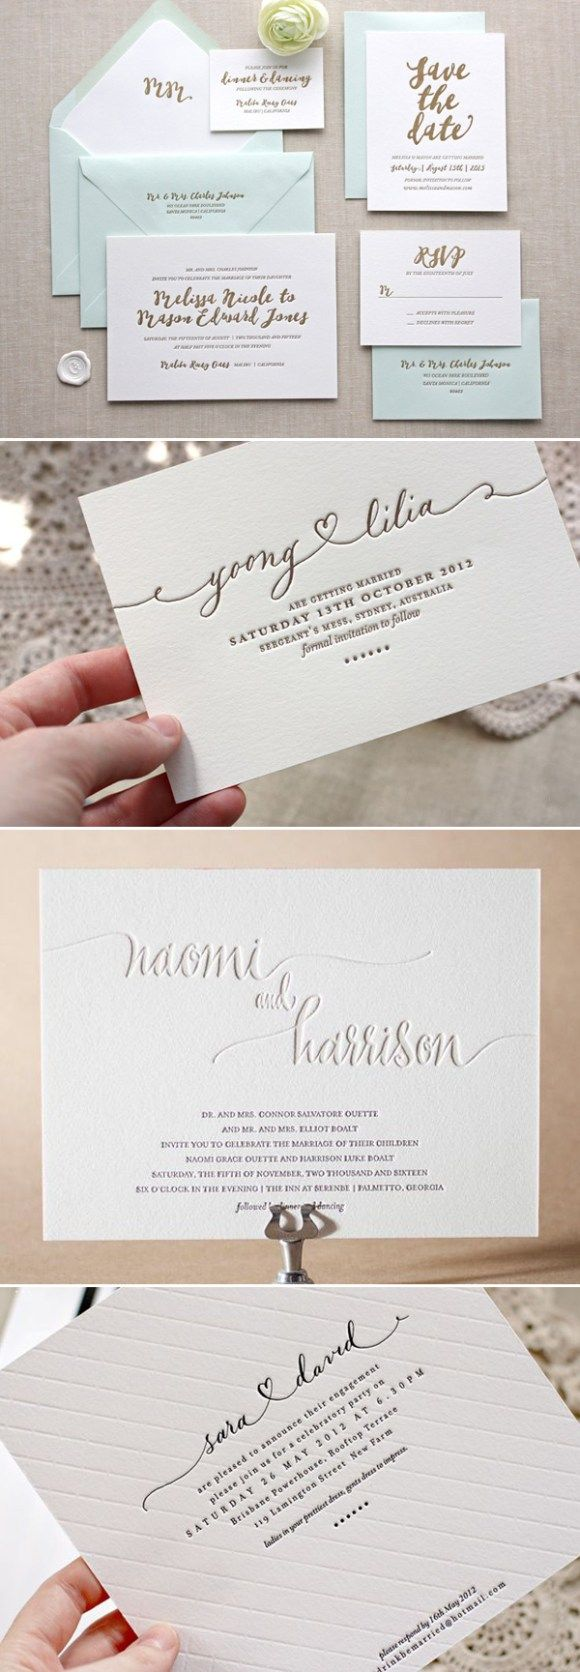 wedding invitation wording with no reception%0A    Creative Invitation Ideas for Minimalist Couples